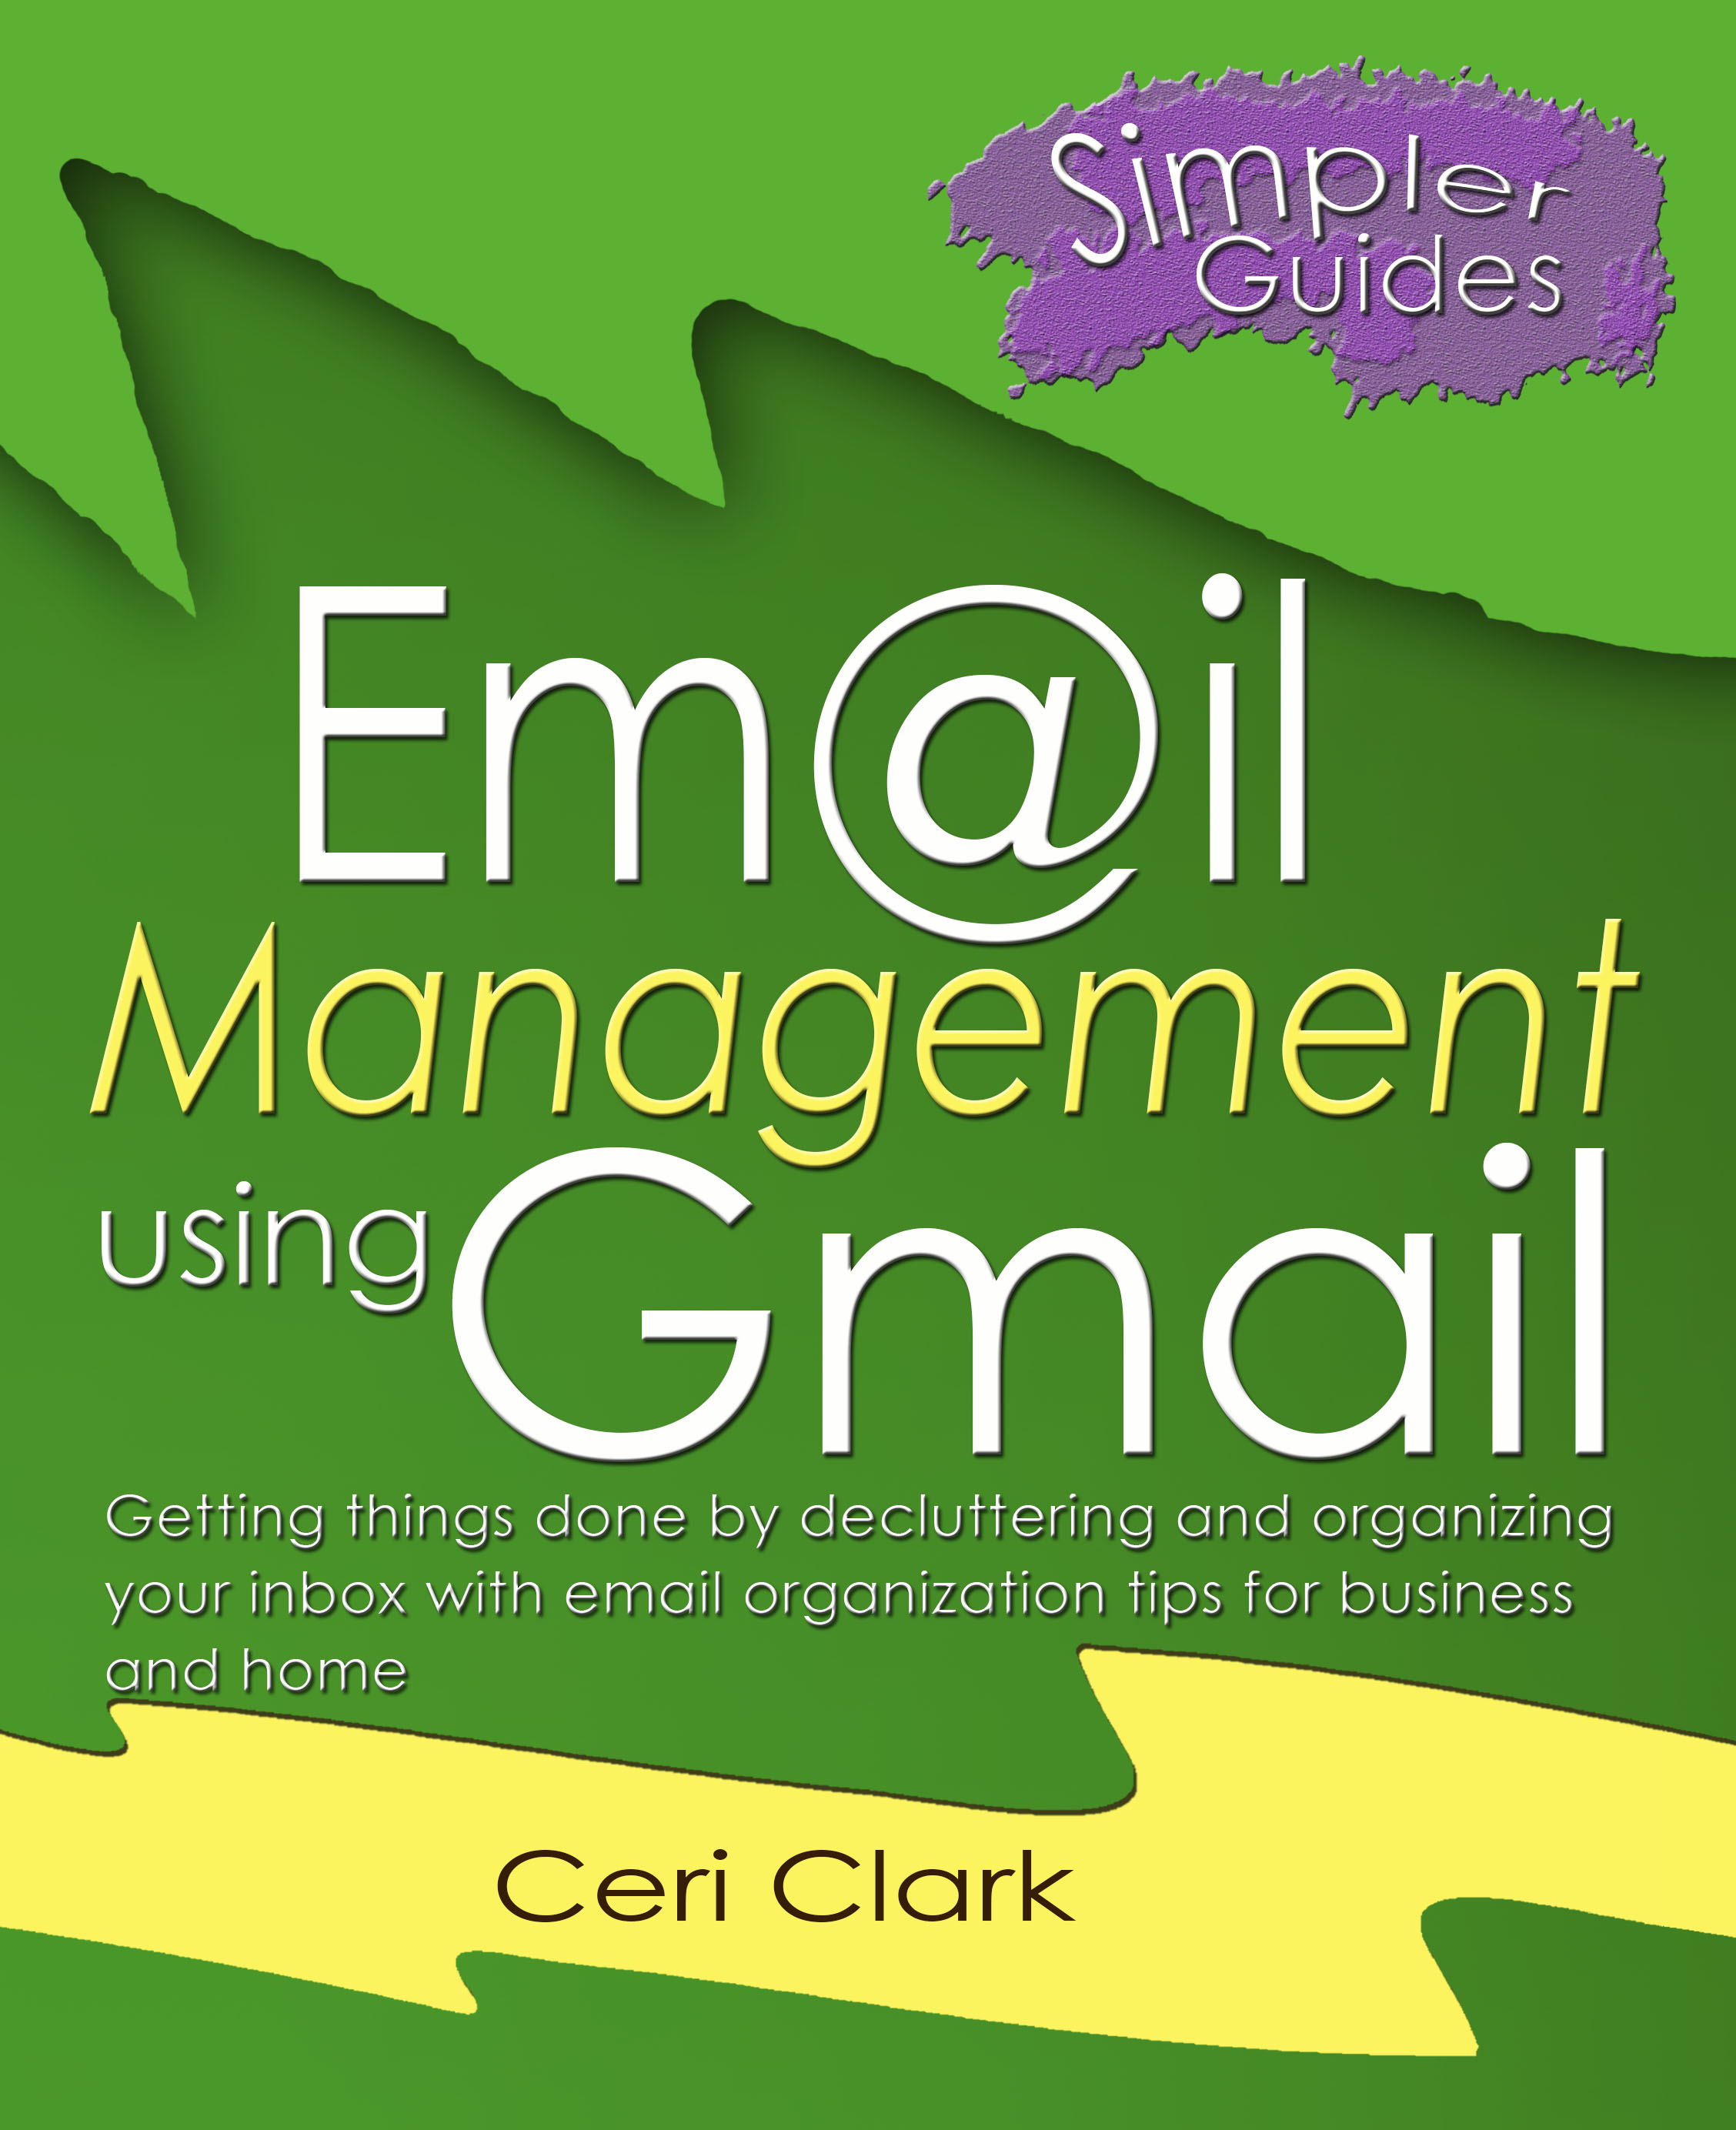 Email Management using Gmail: Getting things done by decluttering and organizing your inbox with email organization tips for business and home (Simpler Guides)